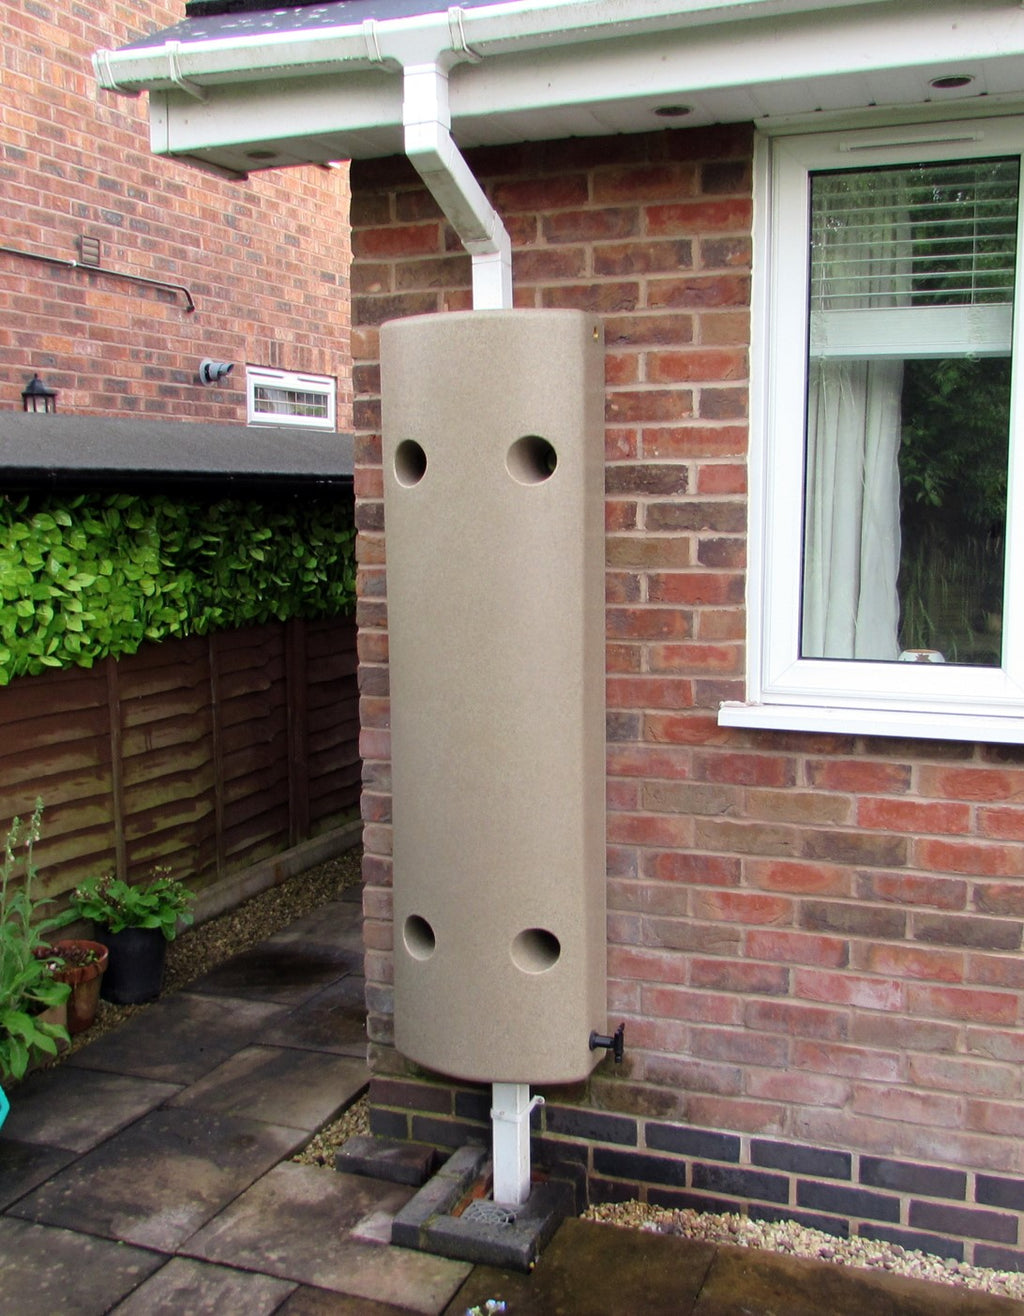 100l Elibutt wall mounted water butt, no diverter required - Freeflush Rainwater Harvesting Ltd.